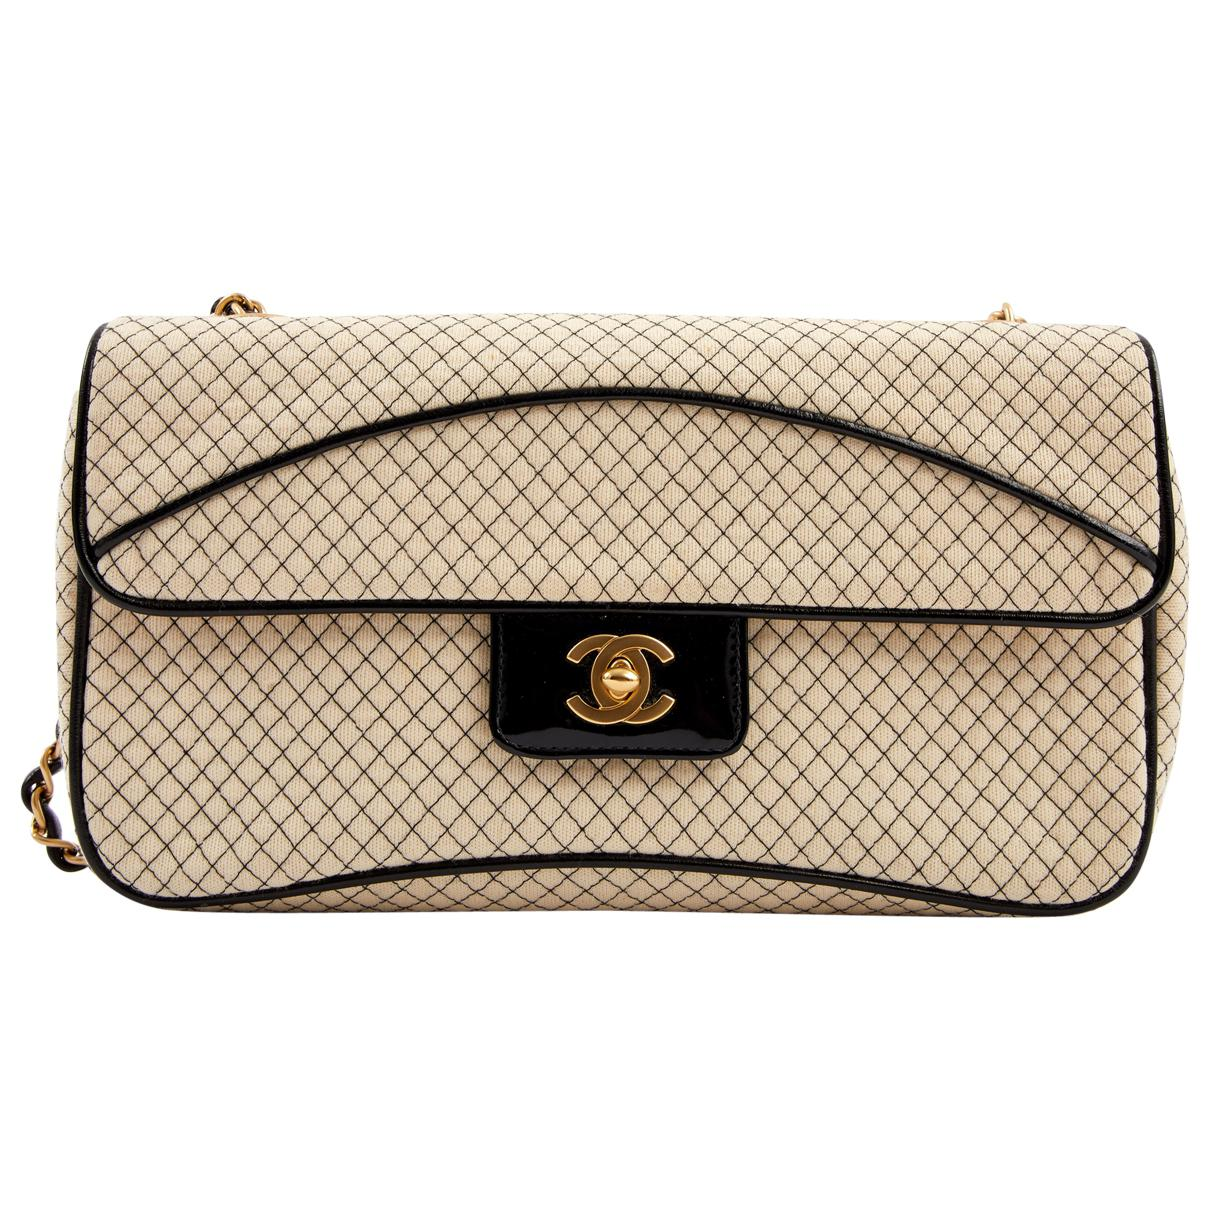 Pre-owned - Timeless cloth bag Chanel 3QUU75zmf